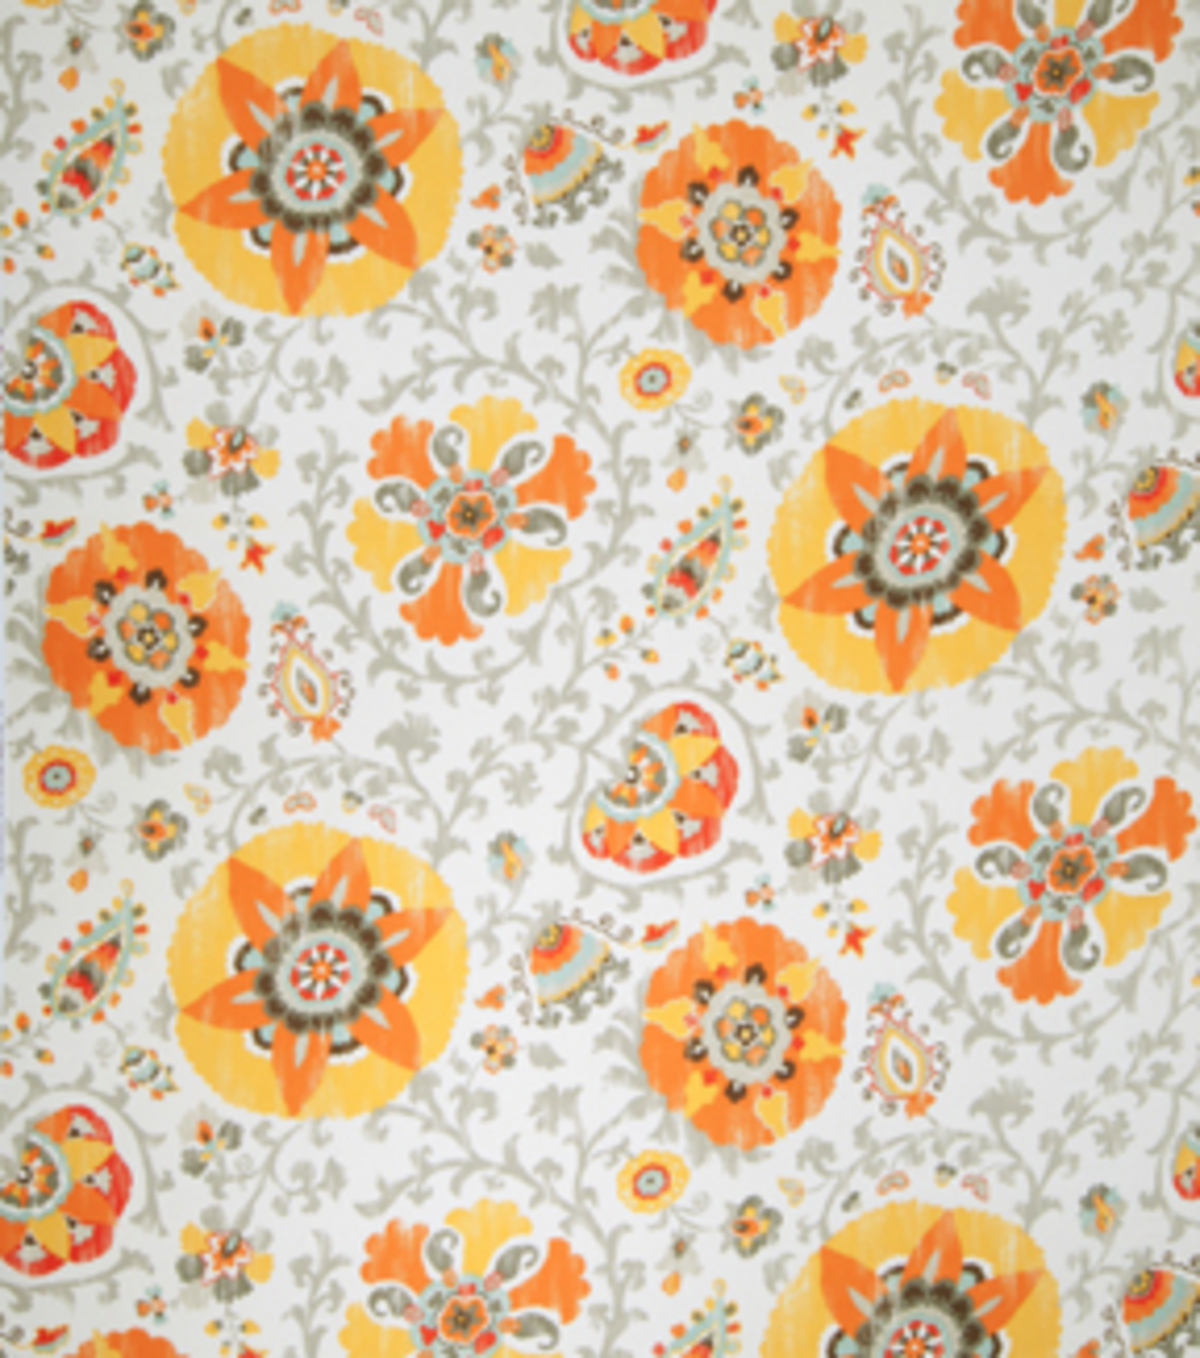 Home Decor 8\u0022x8\u0022 Fabric Swatch-Eaton Square Flowerama Gold Floral